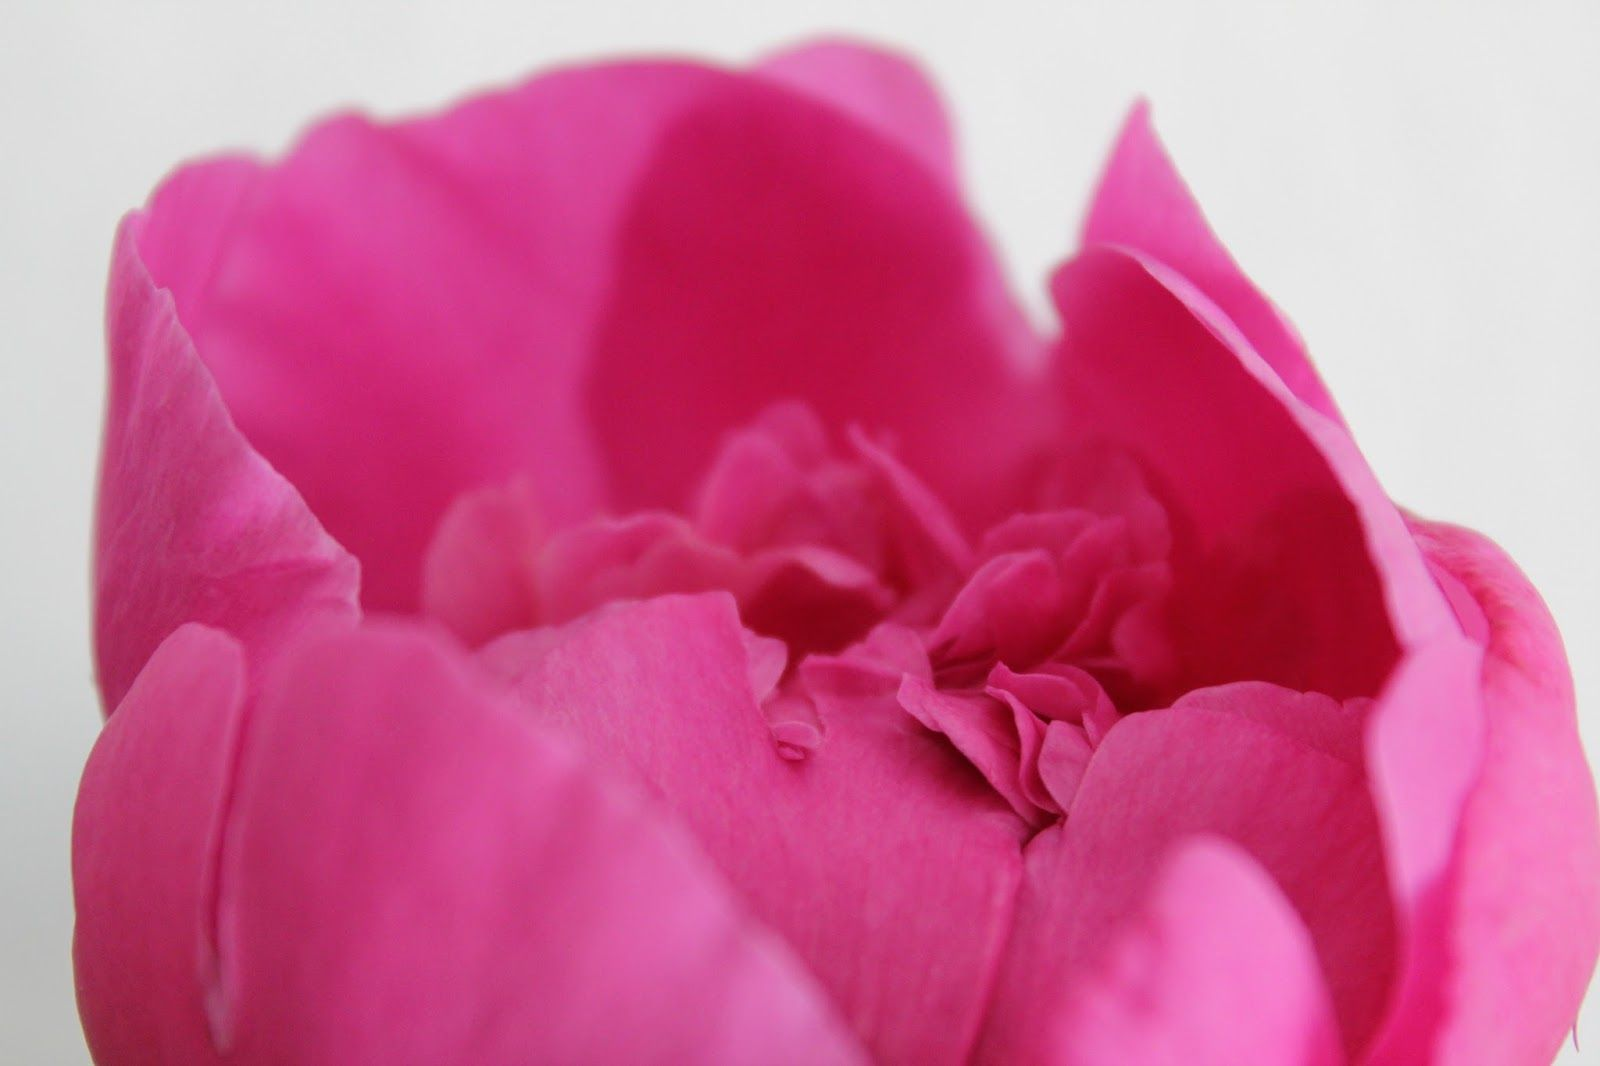 pink peonies close-up